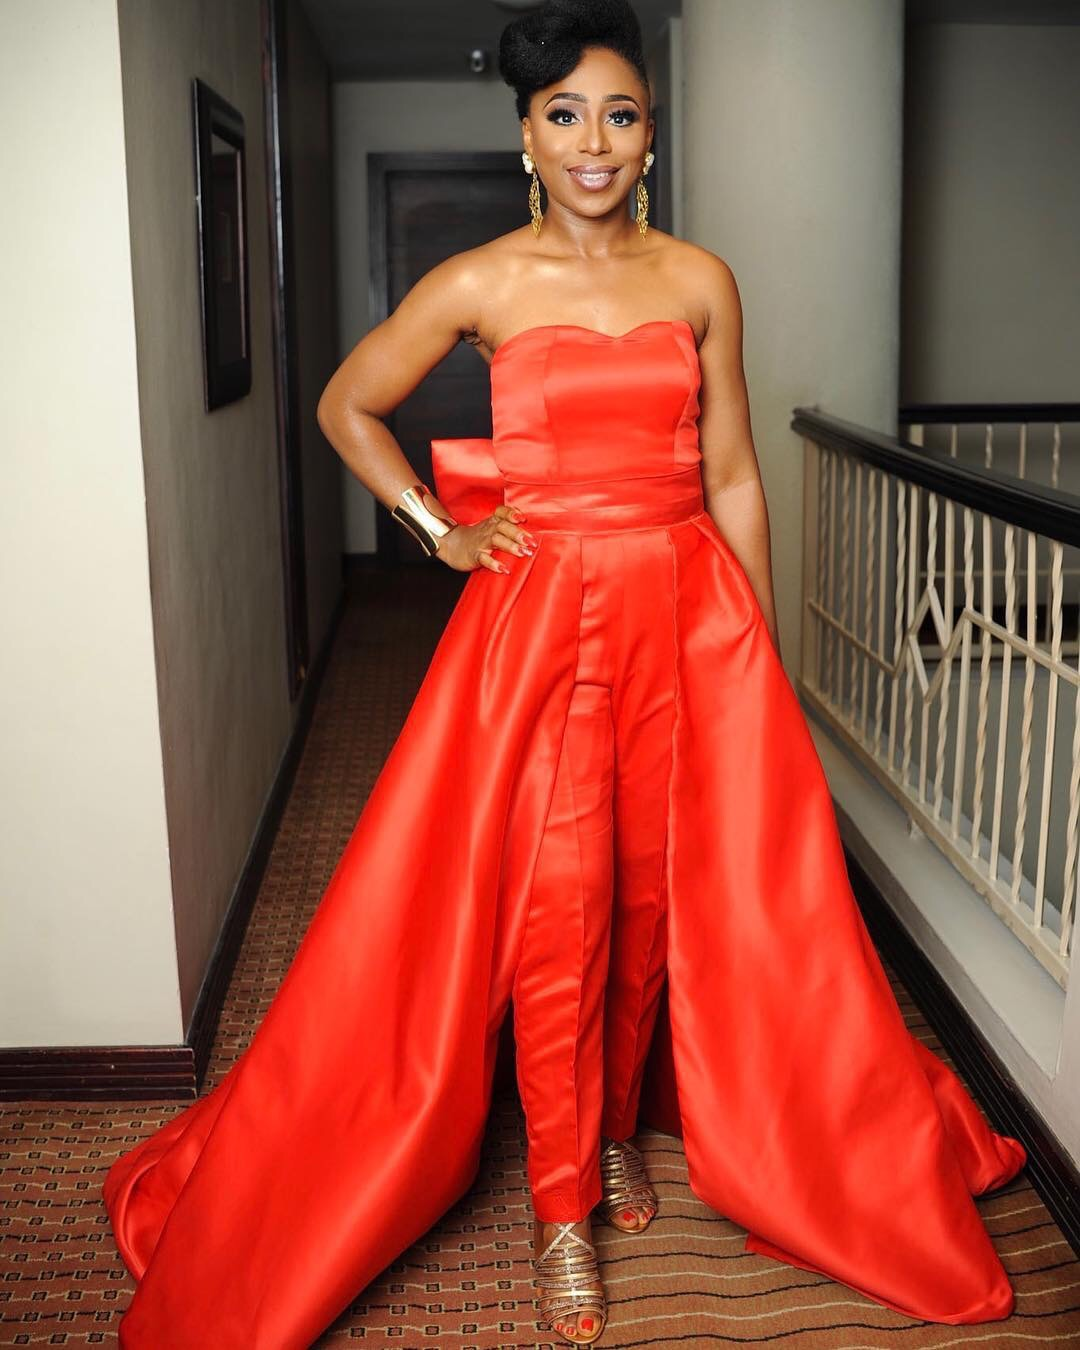 """Dakore Stuns In Flawless Red Evening Outfit At Premiere Of """"Isoken: The Movie"""""""